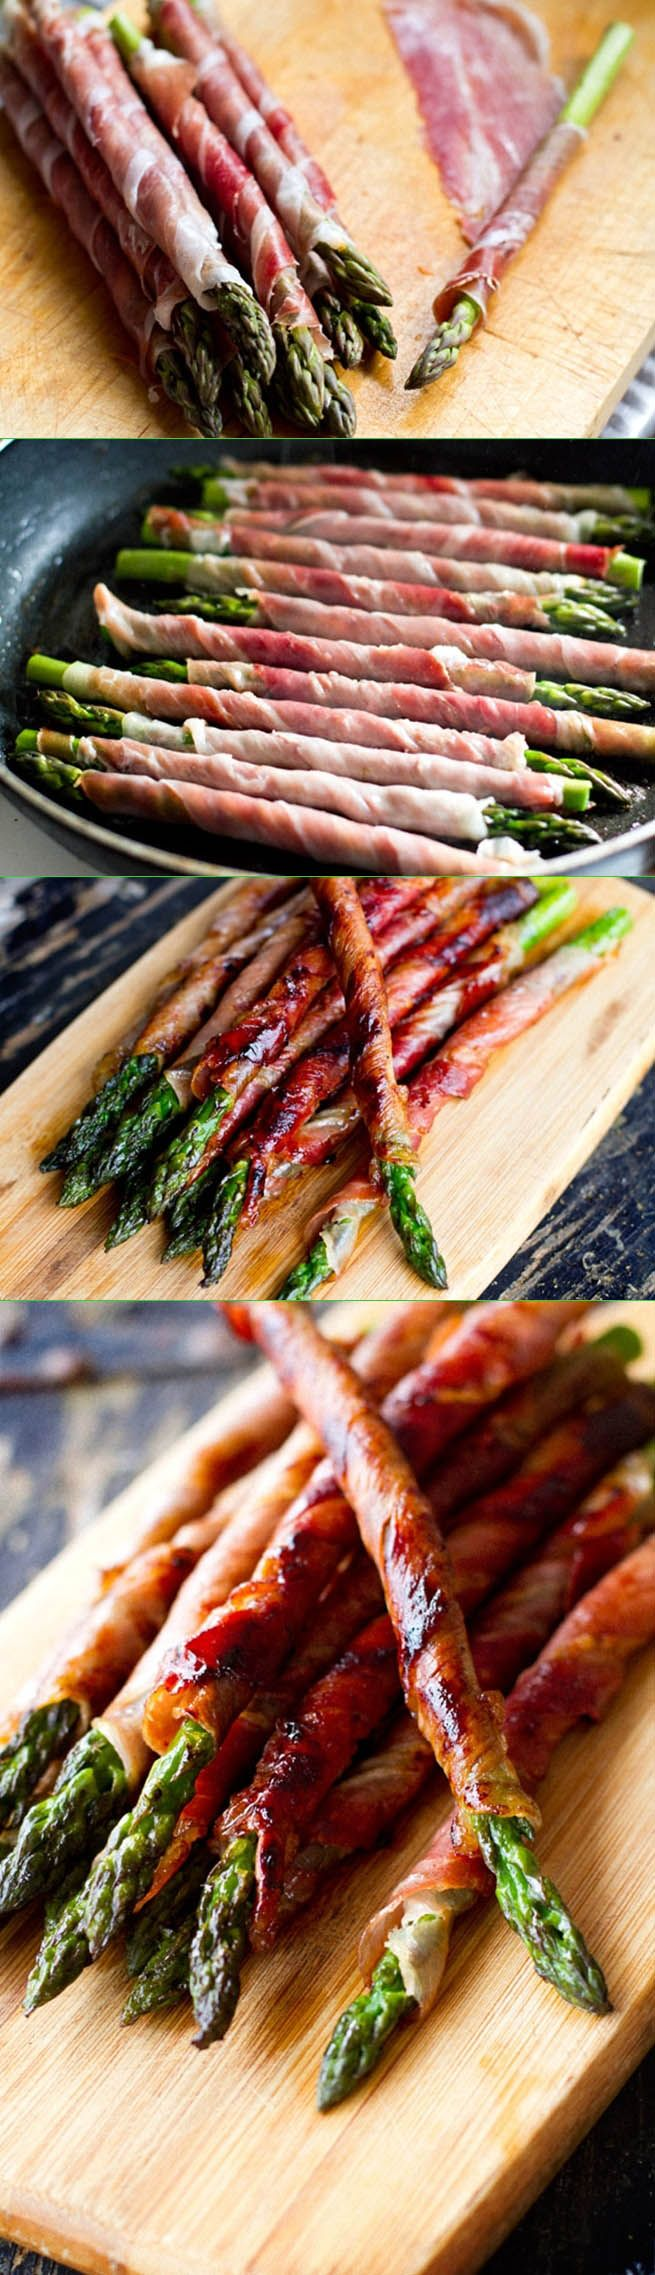 Wrapped asparagus. more even cooking. Prosciutto Wrapped Asparagus ...